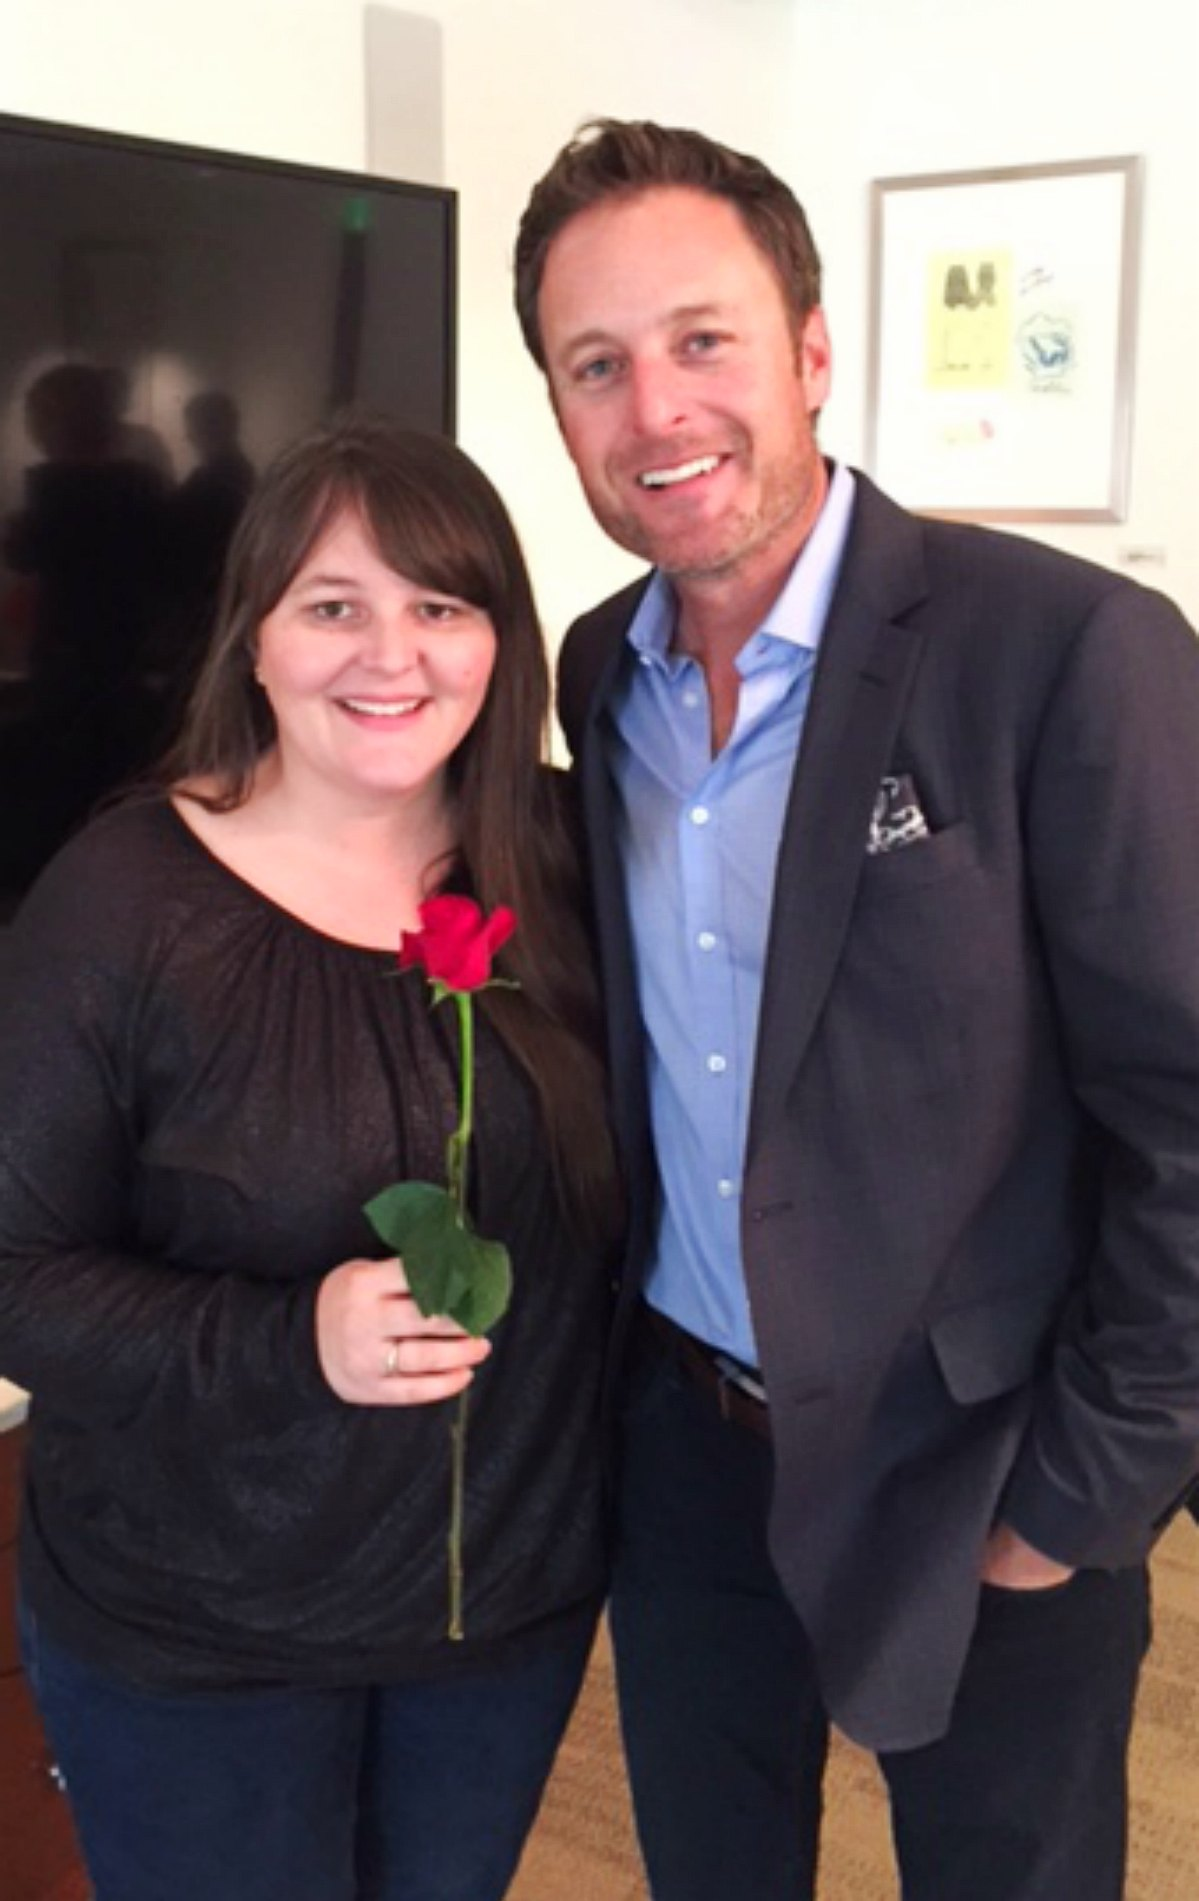 The Bachelor Interview